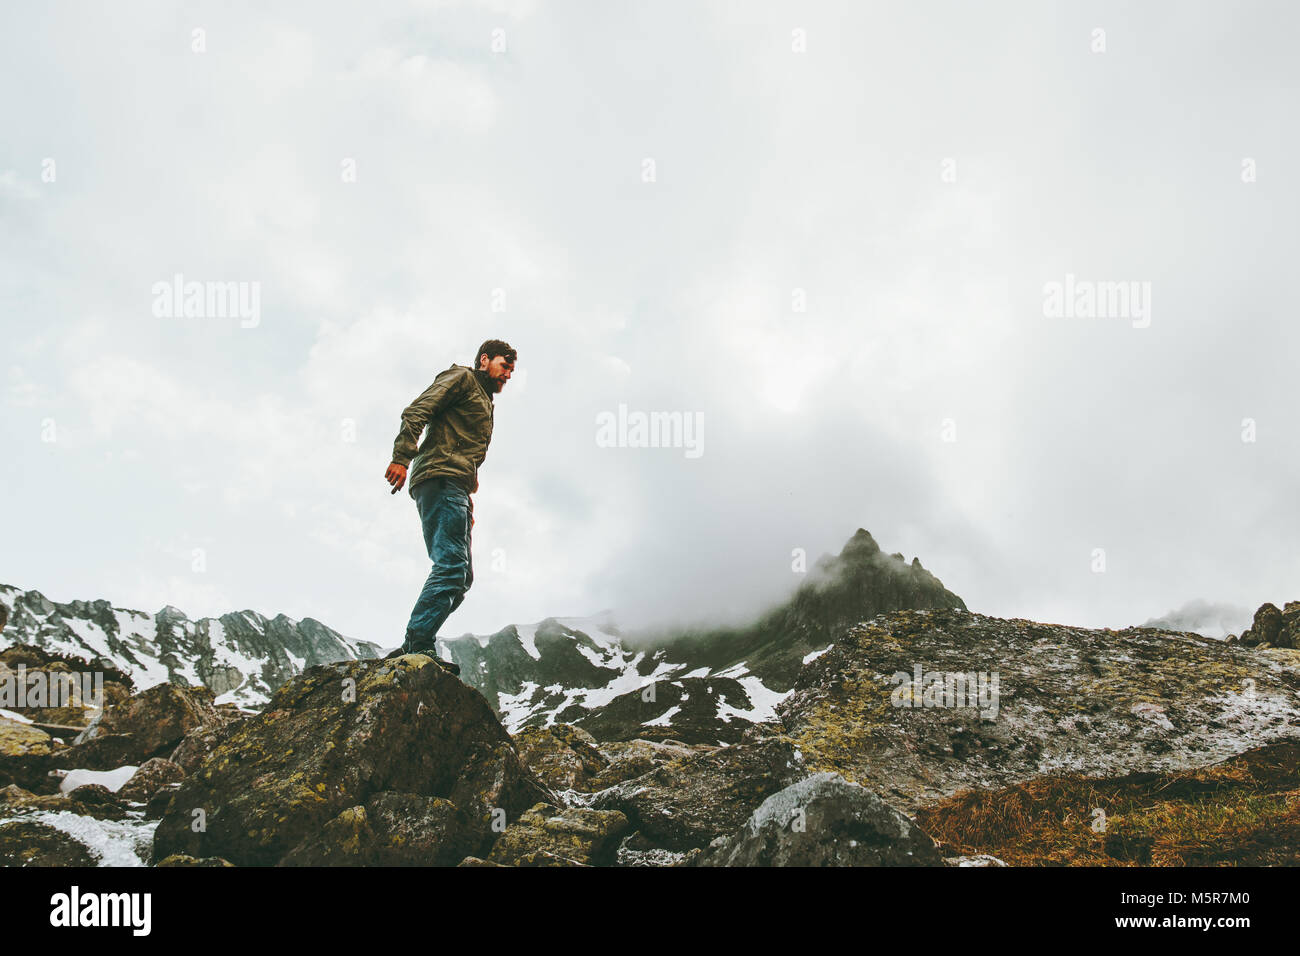 Traveler Man standing alone at foggy mountains Travel lifestyle survival emotional concept adventure outdoor active - Stock Image